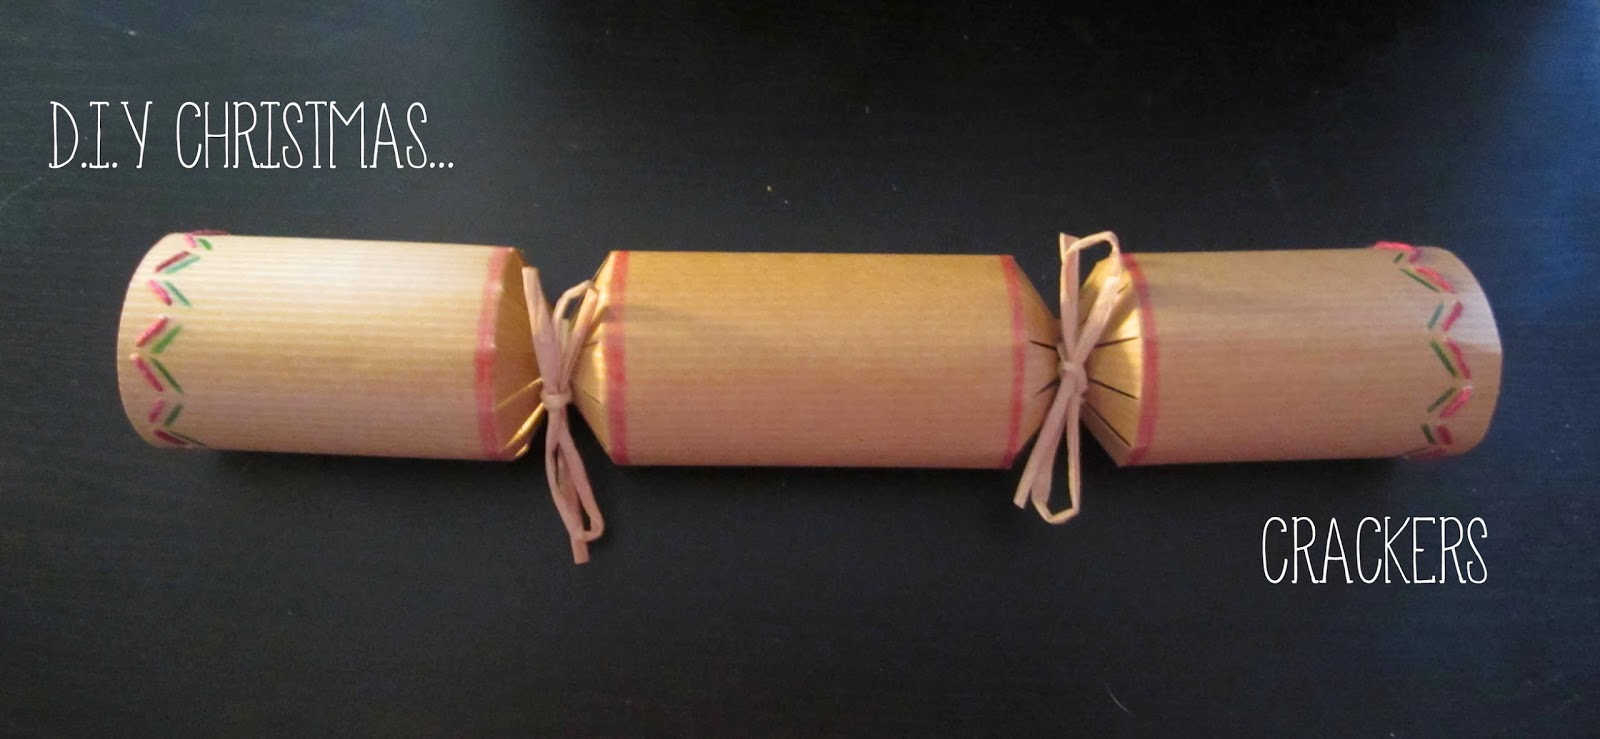 Diy christmas crackers harrietalicefox this year i found these great diy christmas cracker kits in wilkinsons solutioingenieria Image collections